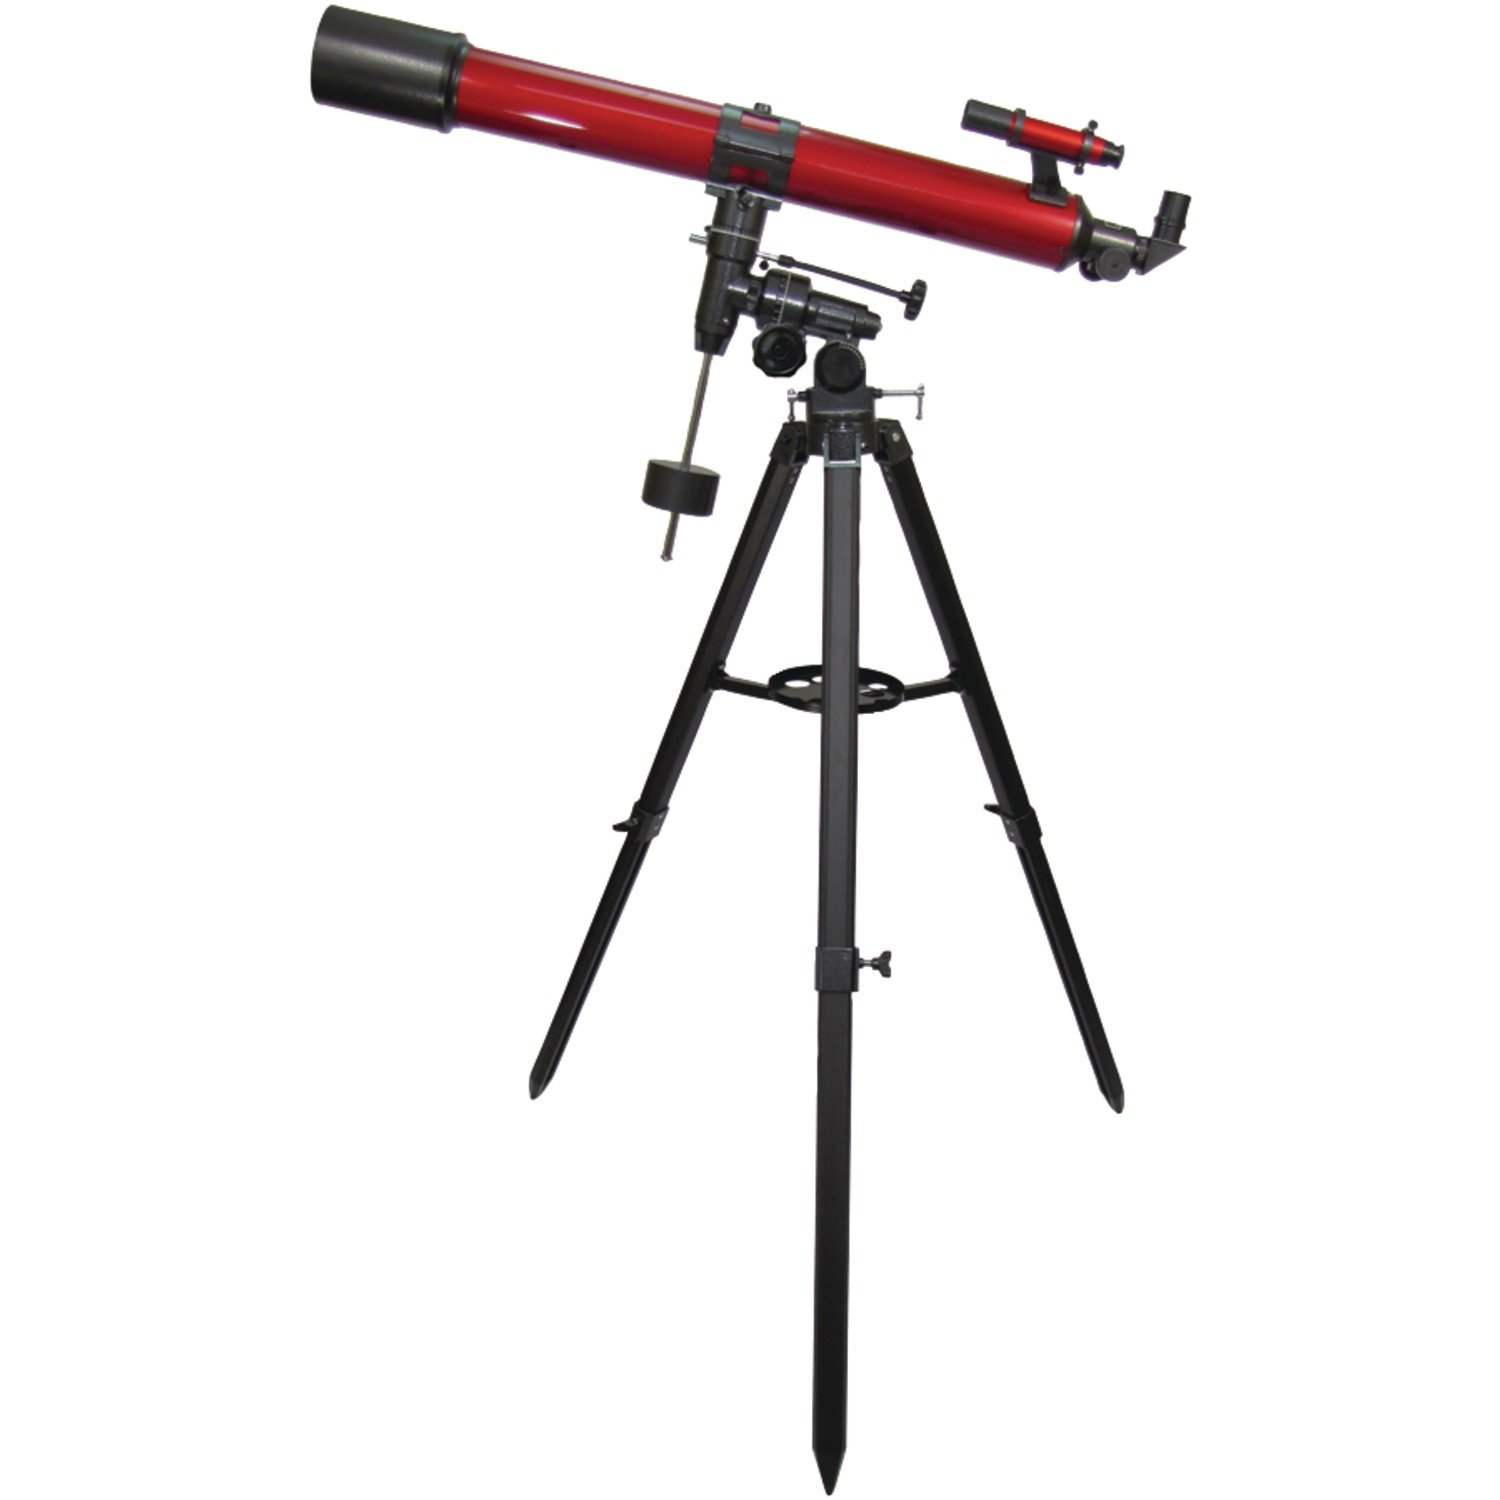 Carson Red Planet 50-100x90mm Refractor Telescope For Astronomy (RP-400) by Carson